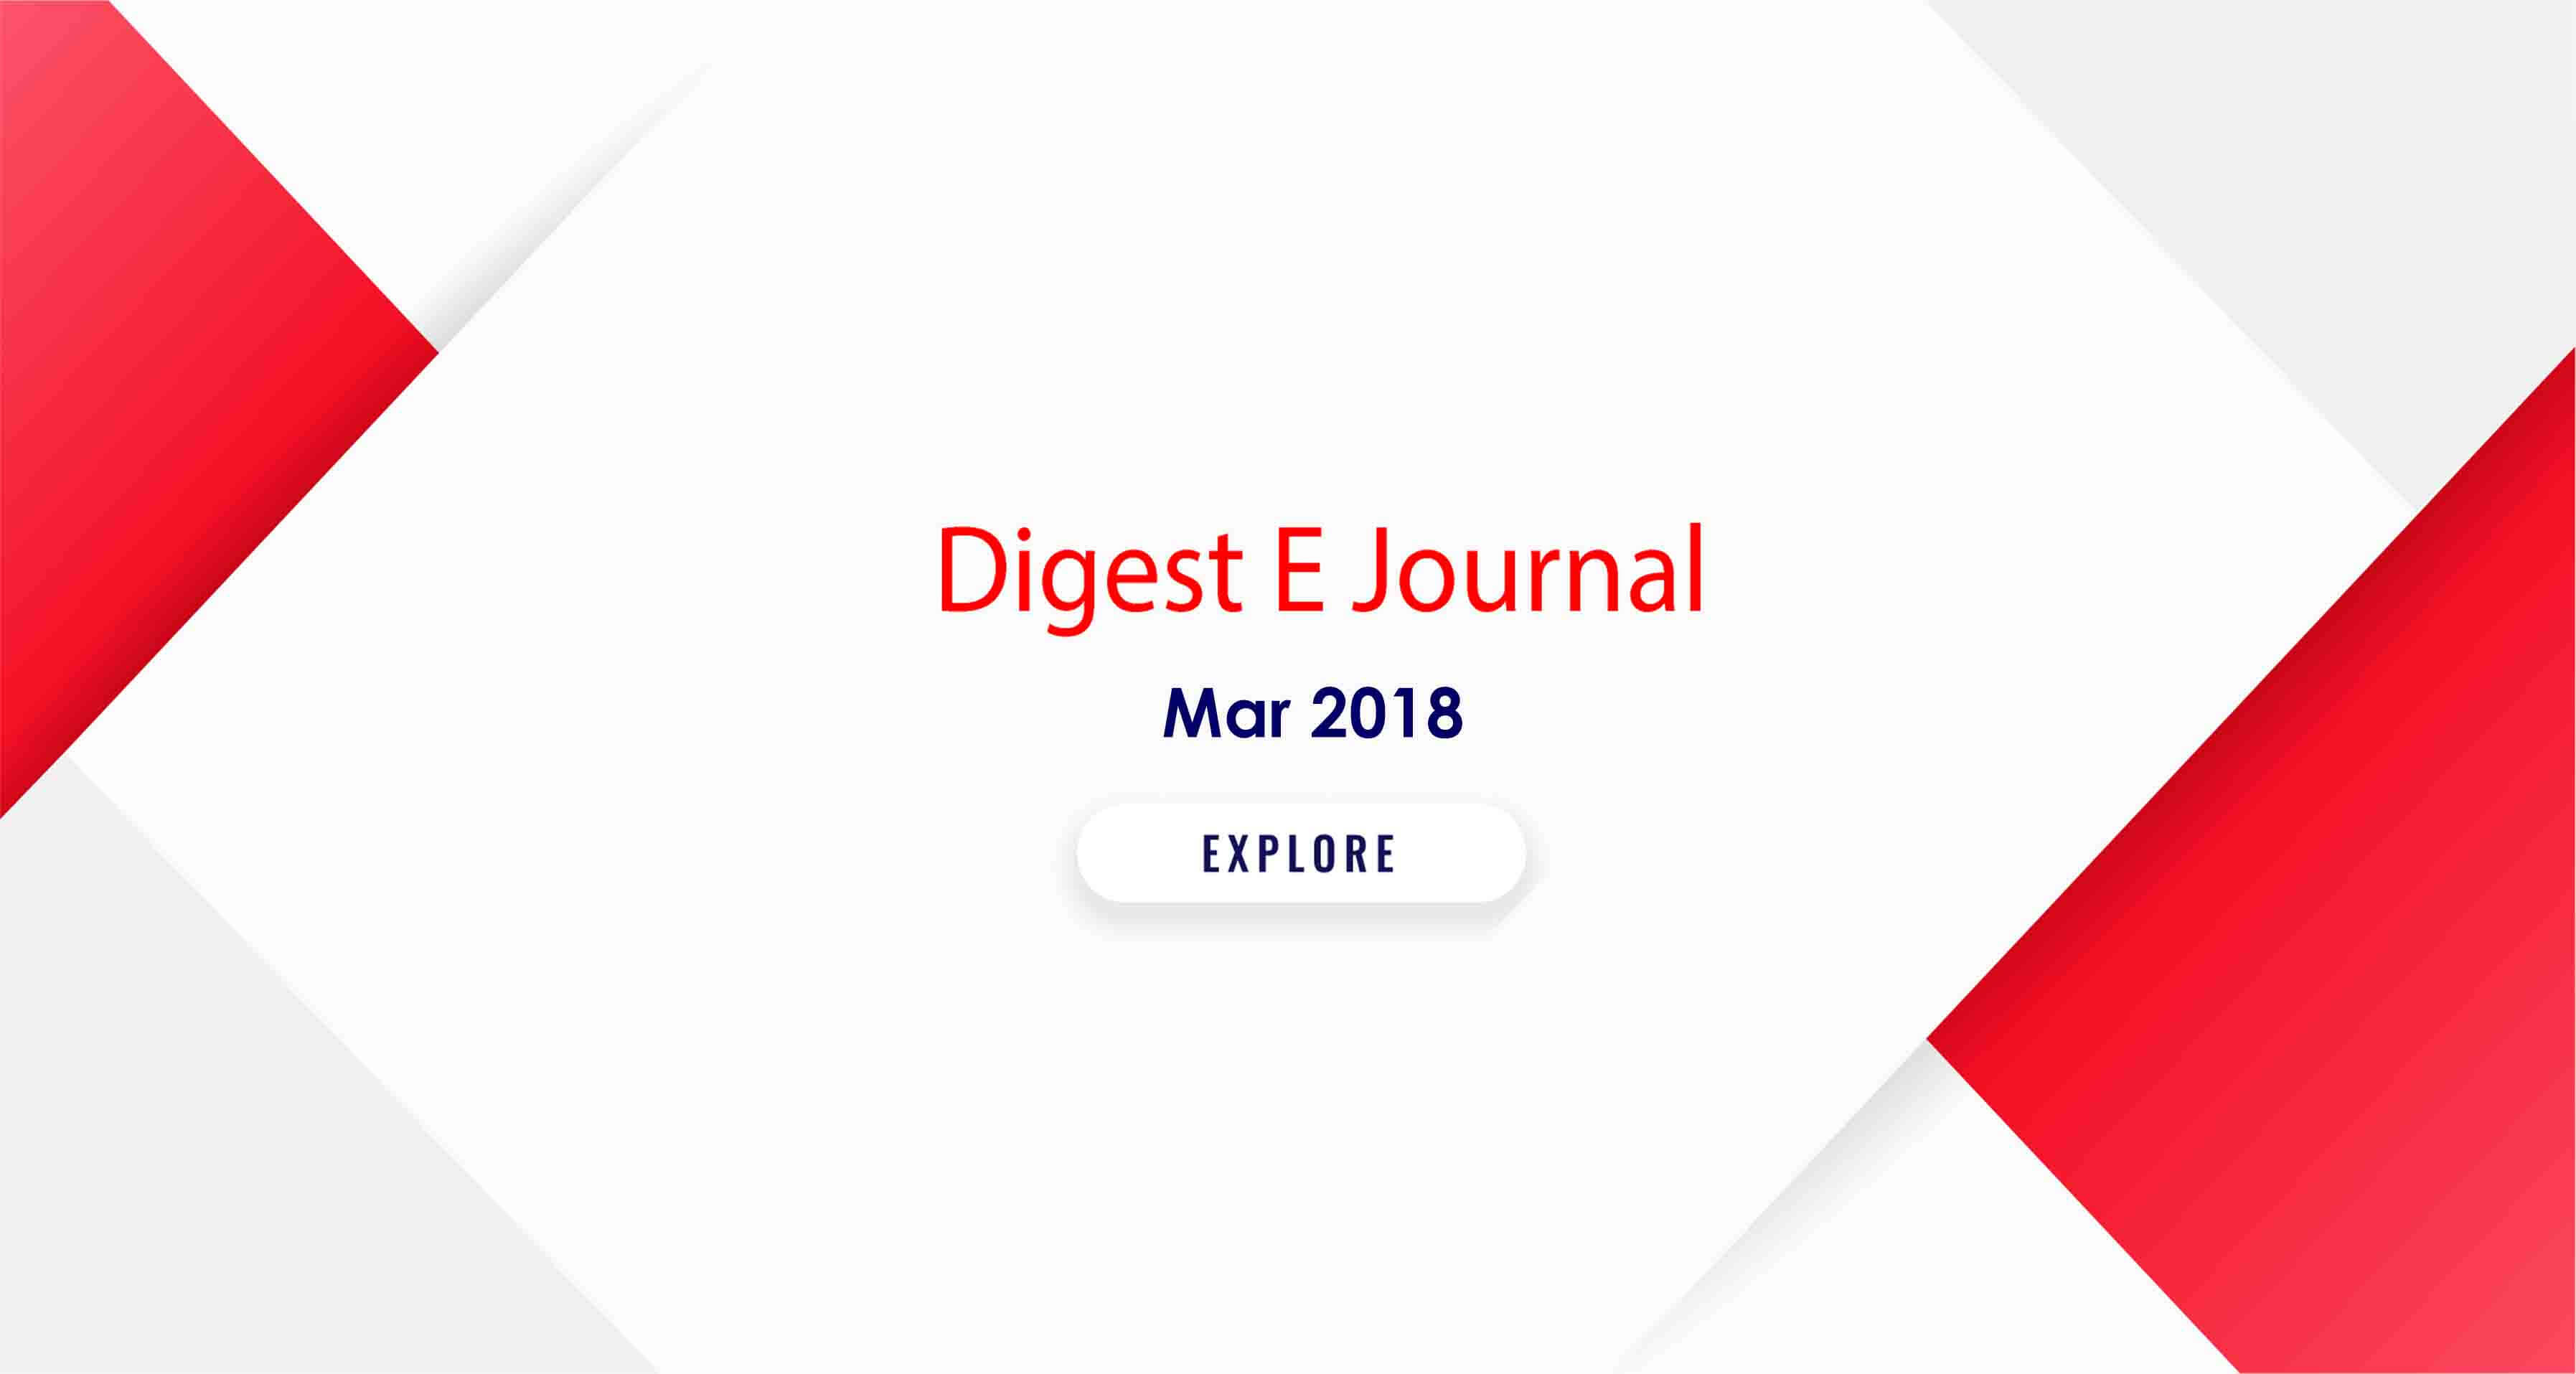 SBS DIGEST E Journal Mar 2018